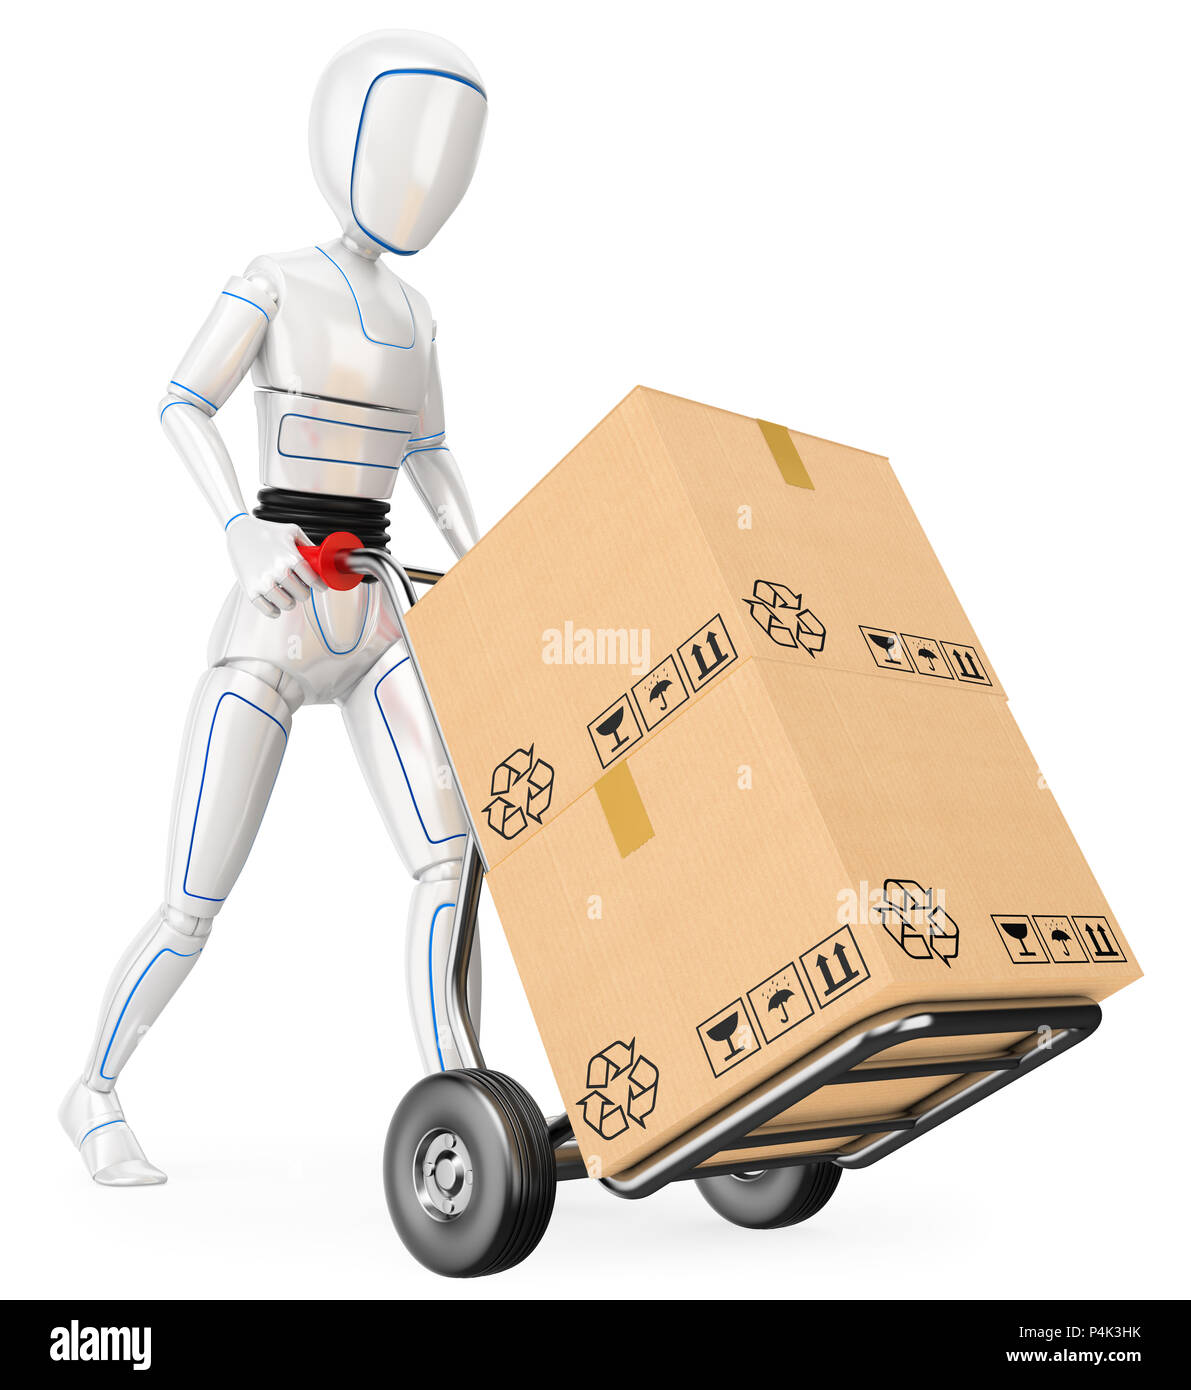 3d futuristic android illustration. Humanoid robot pushing a cart with cardboard boxes. Isolated white background. - Stock Image